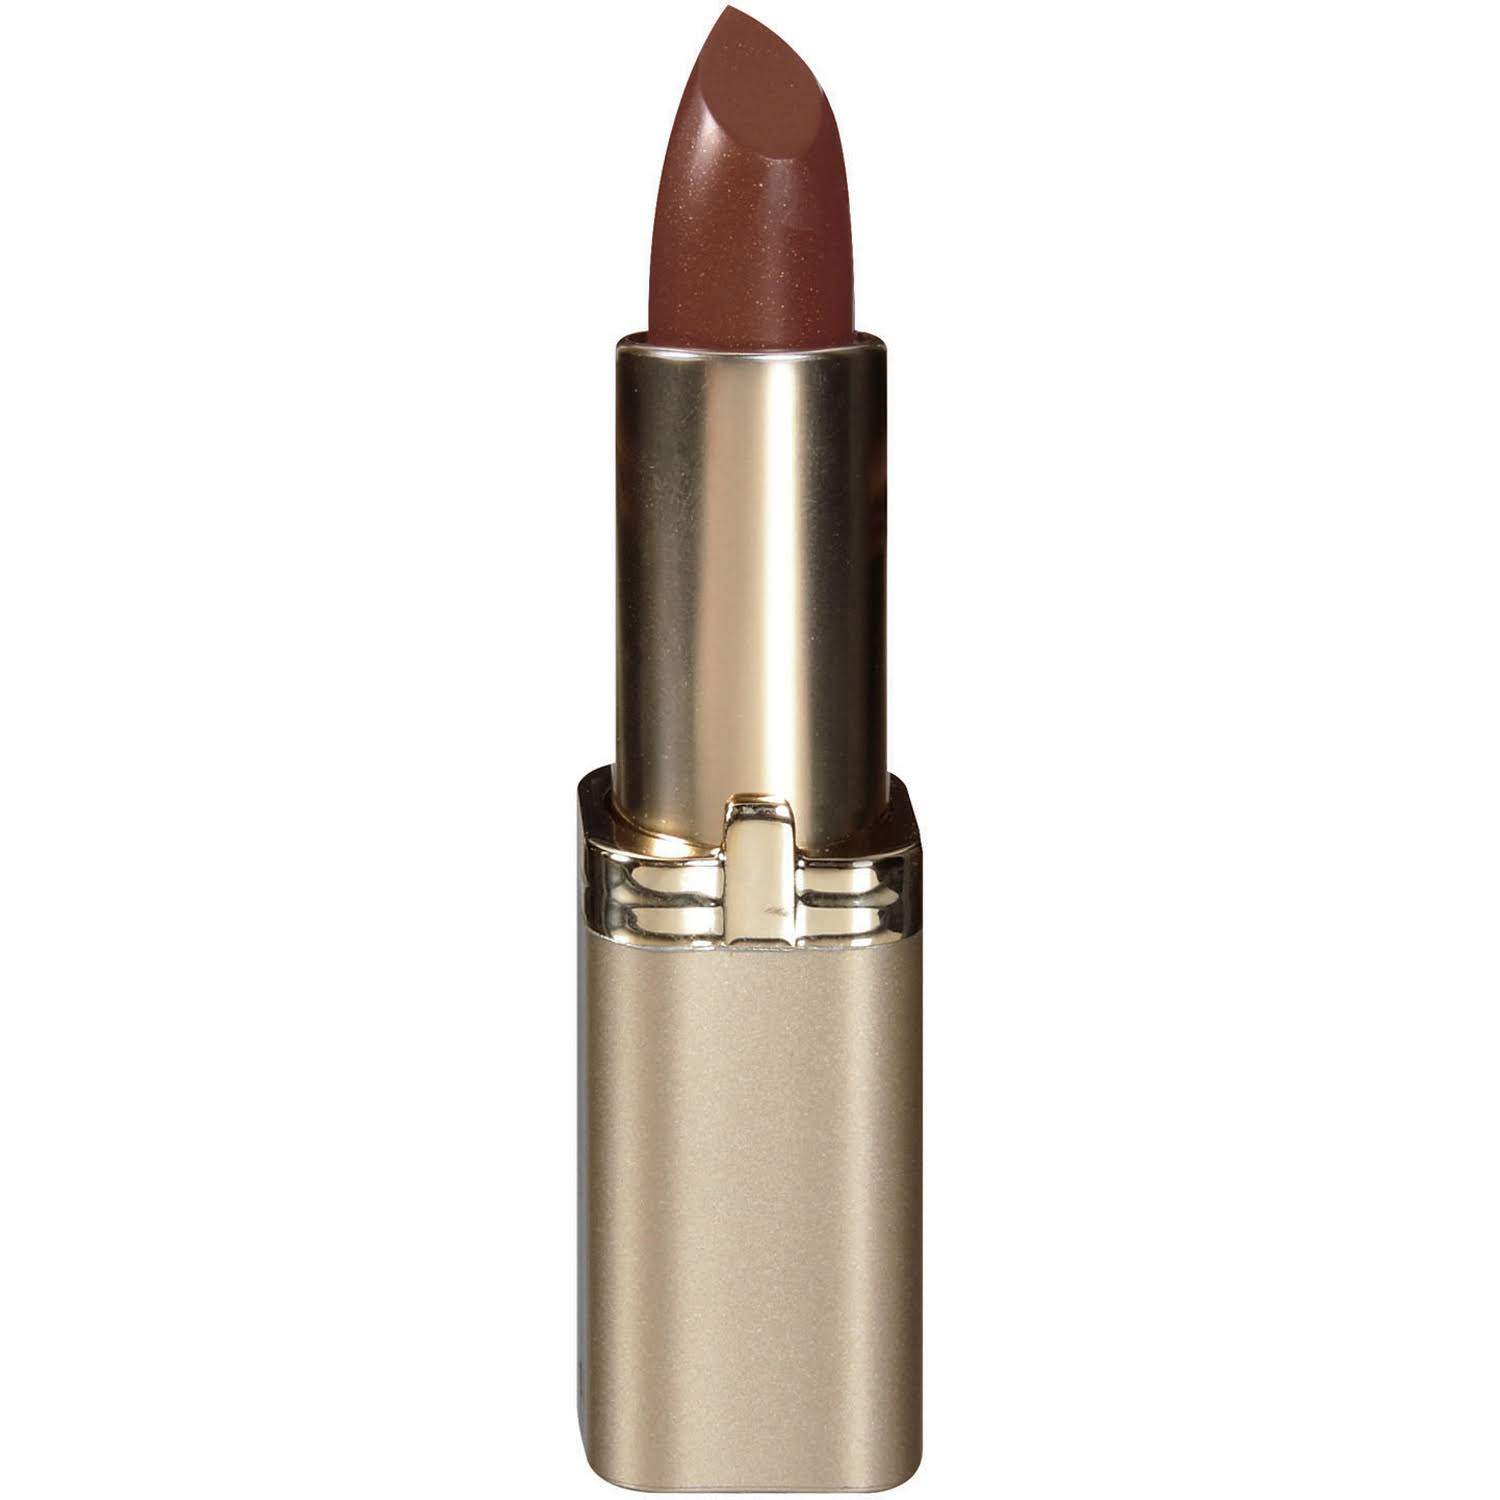 L'Oréal Paris Makeup Colour Riche Original Creamy Hydrating Satin Lipstick - 815 Ginger Spice, 0.13oz